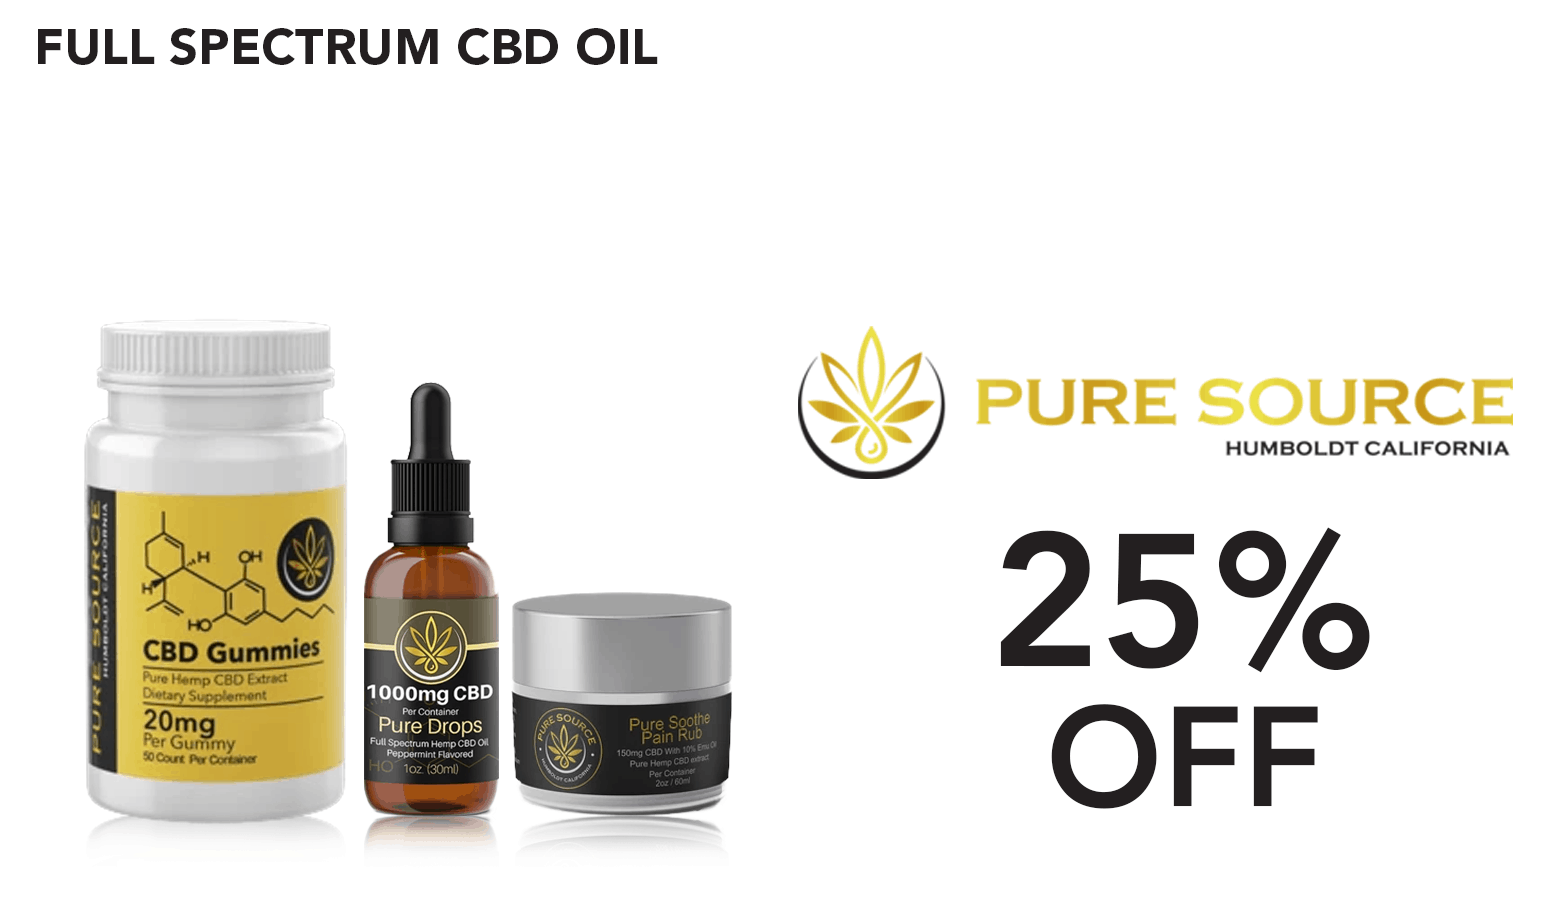 Pure Source Labs CBD Coupon Code discounts promos save on cannabis online Website